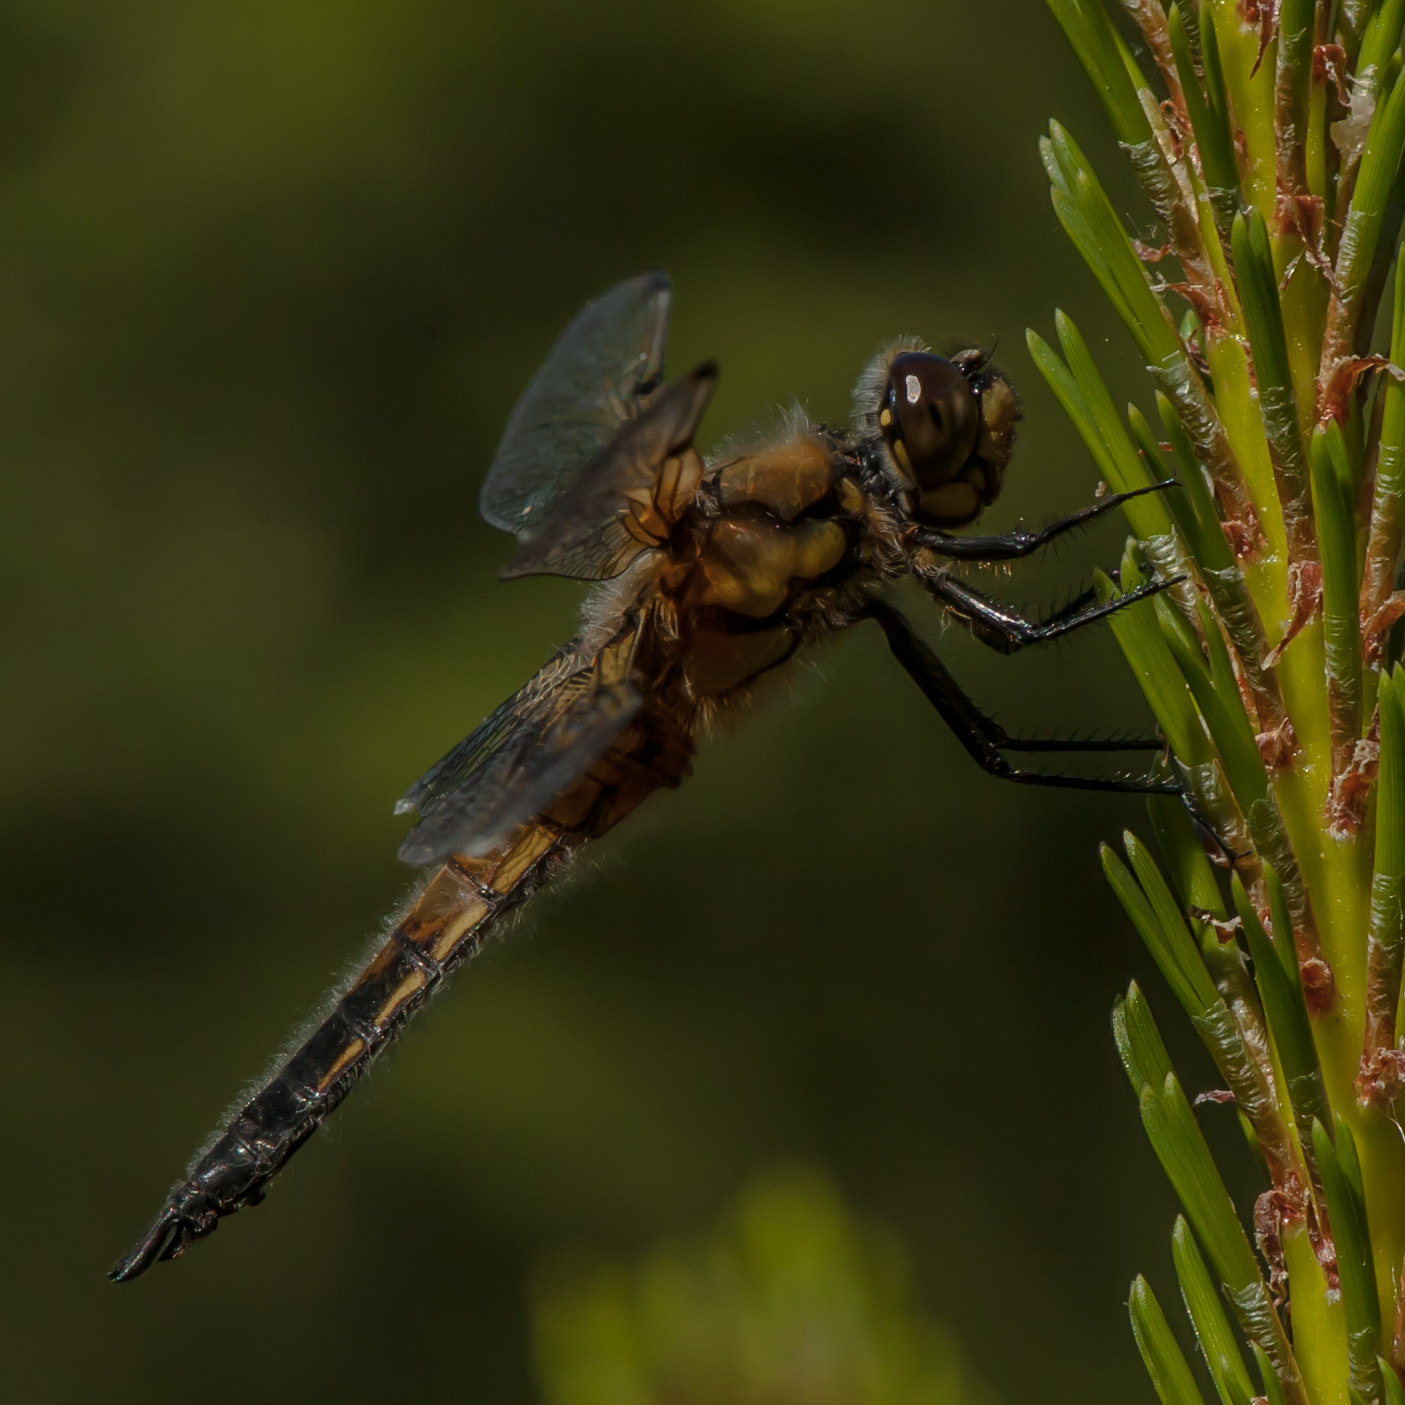 Photograph Dragonfly by jorgen norgaard on 500px